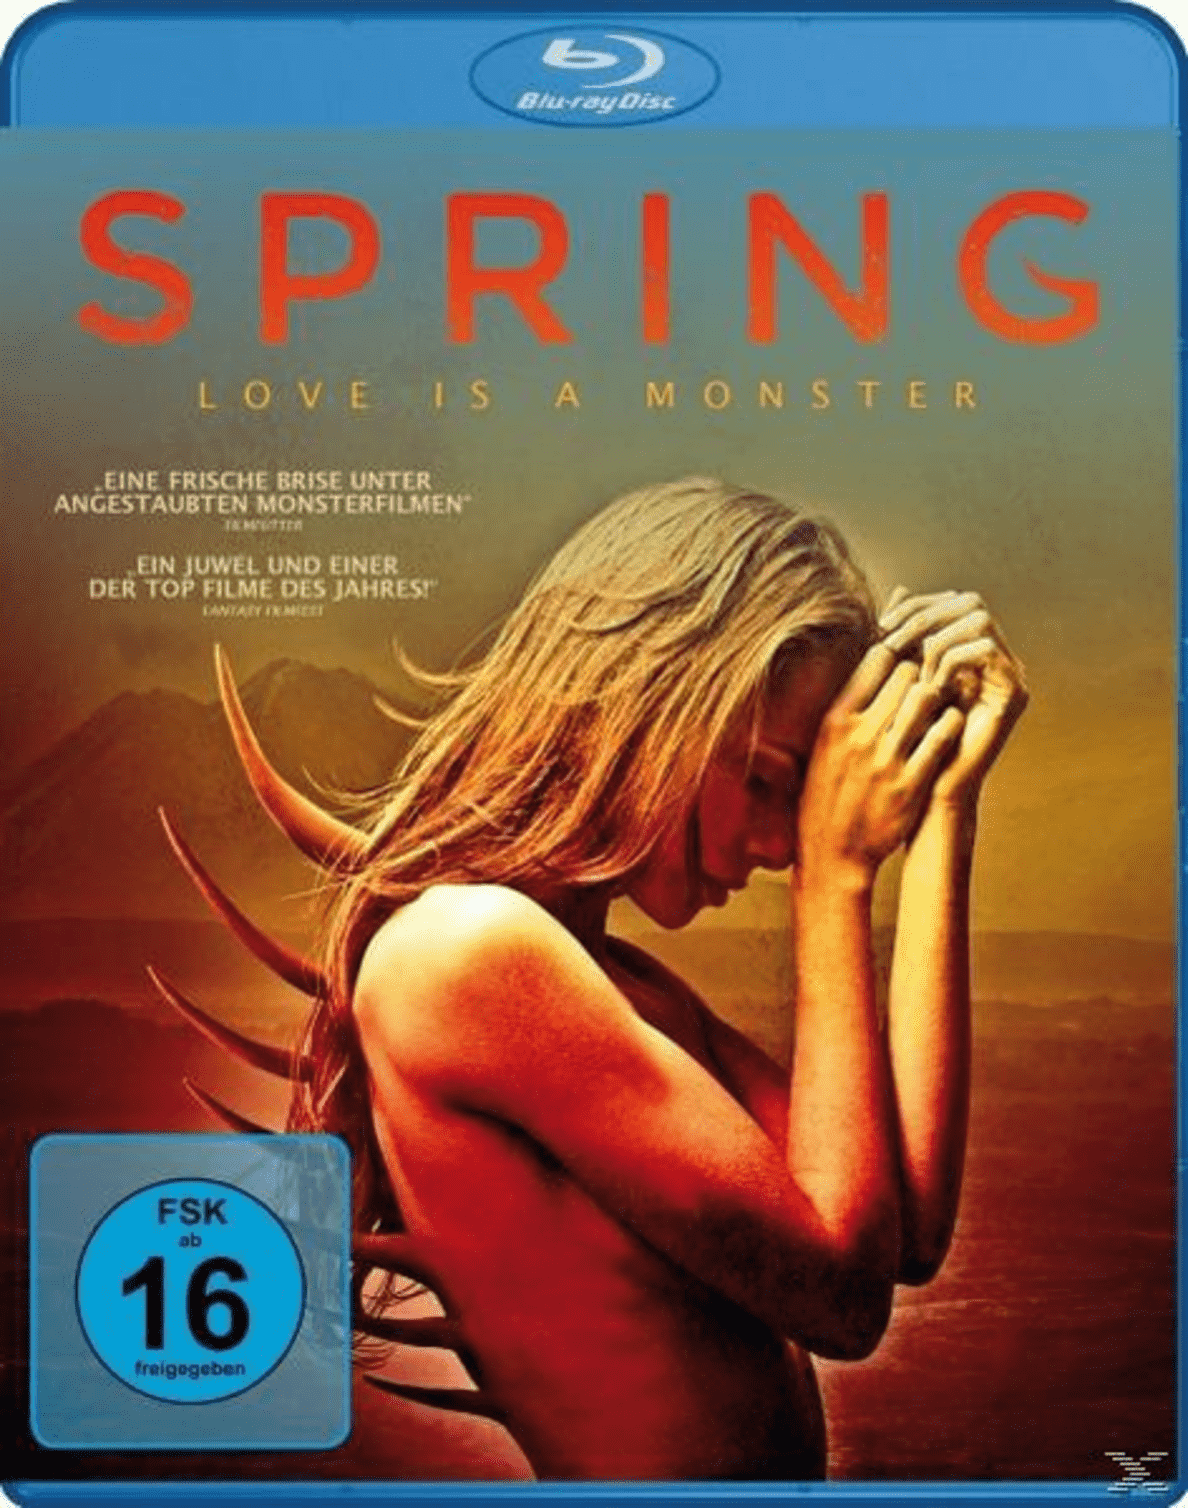 SPRING - LOVE IS A MONSTER auf Blu-ray